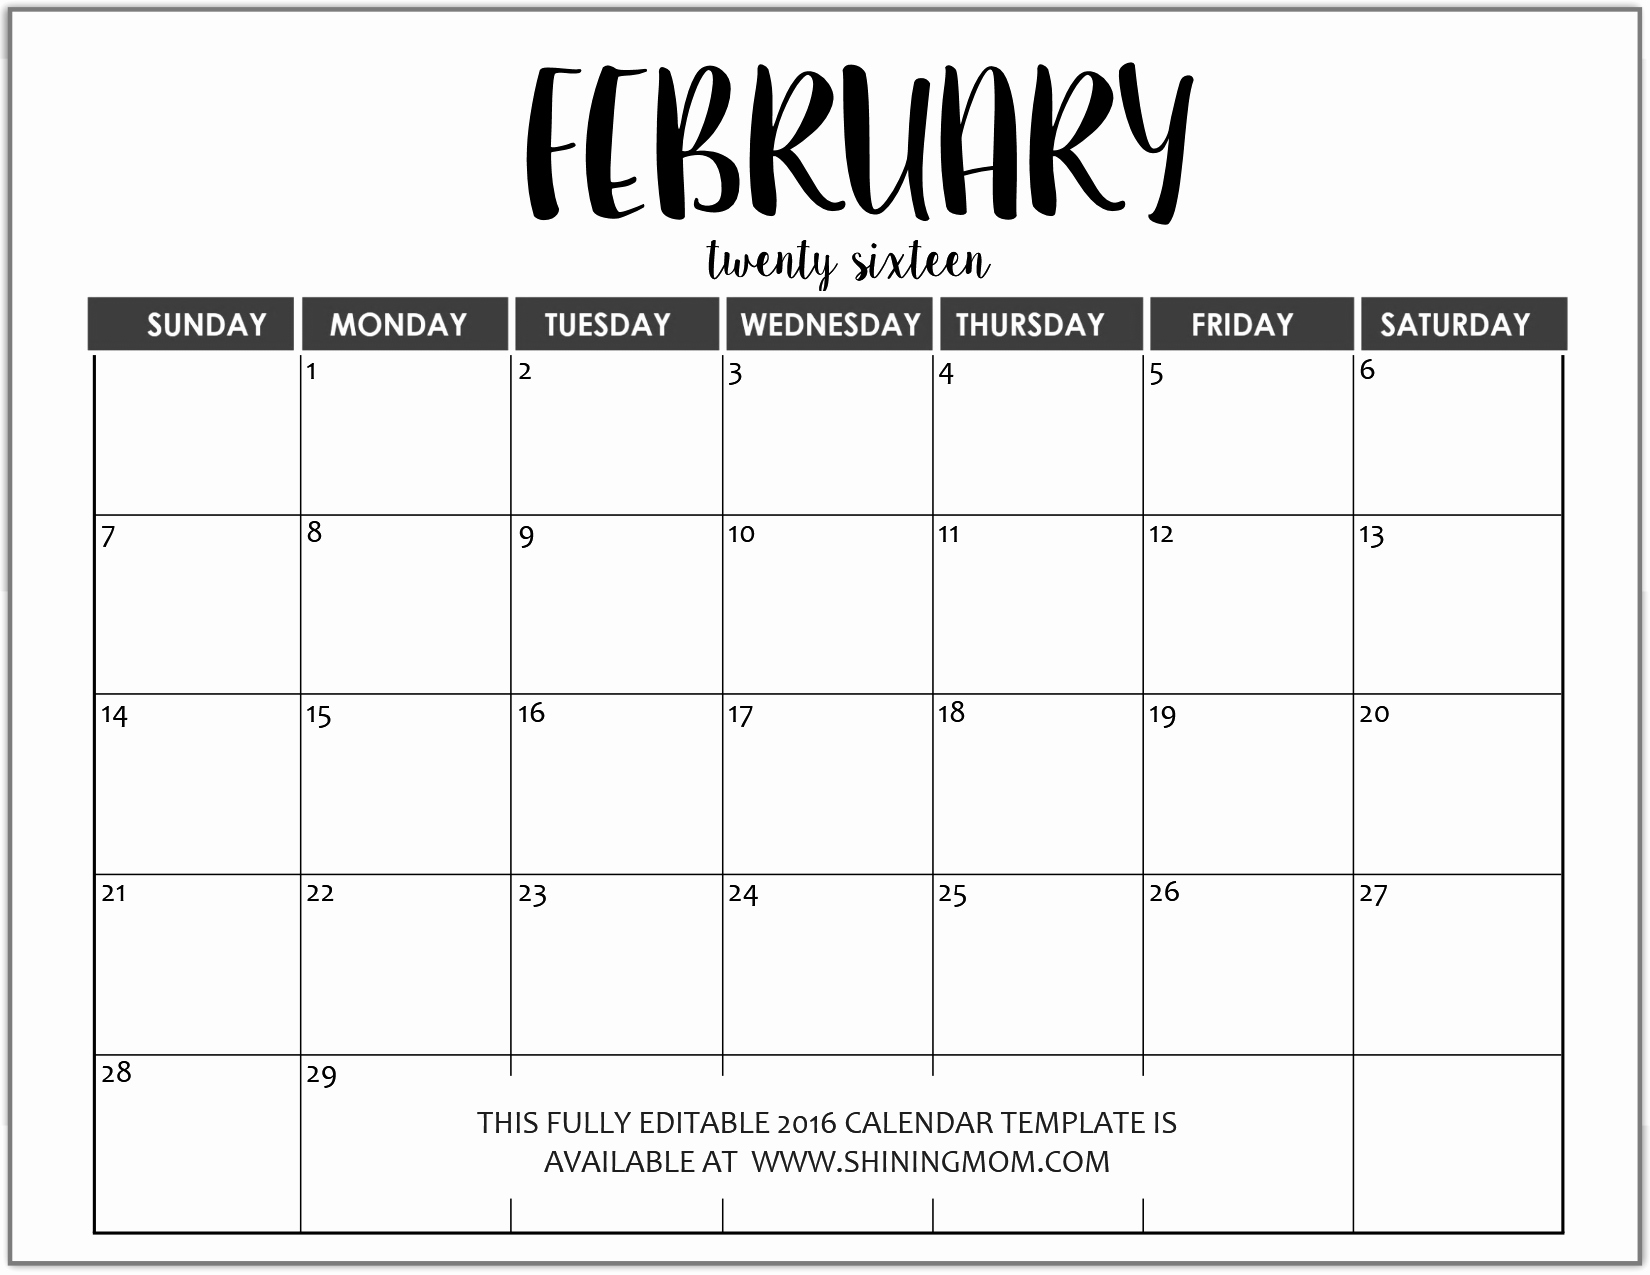 Microsoft Word Schedule Template Fresh Just In Fully Editable 2016 Calendar Templates In Ms Word